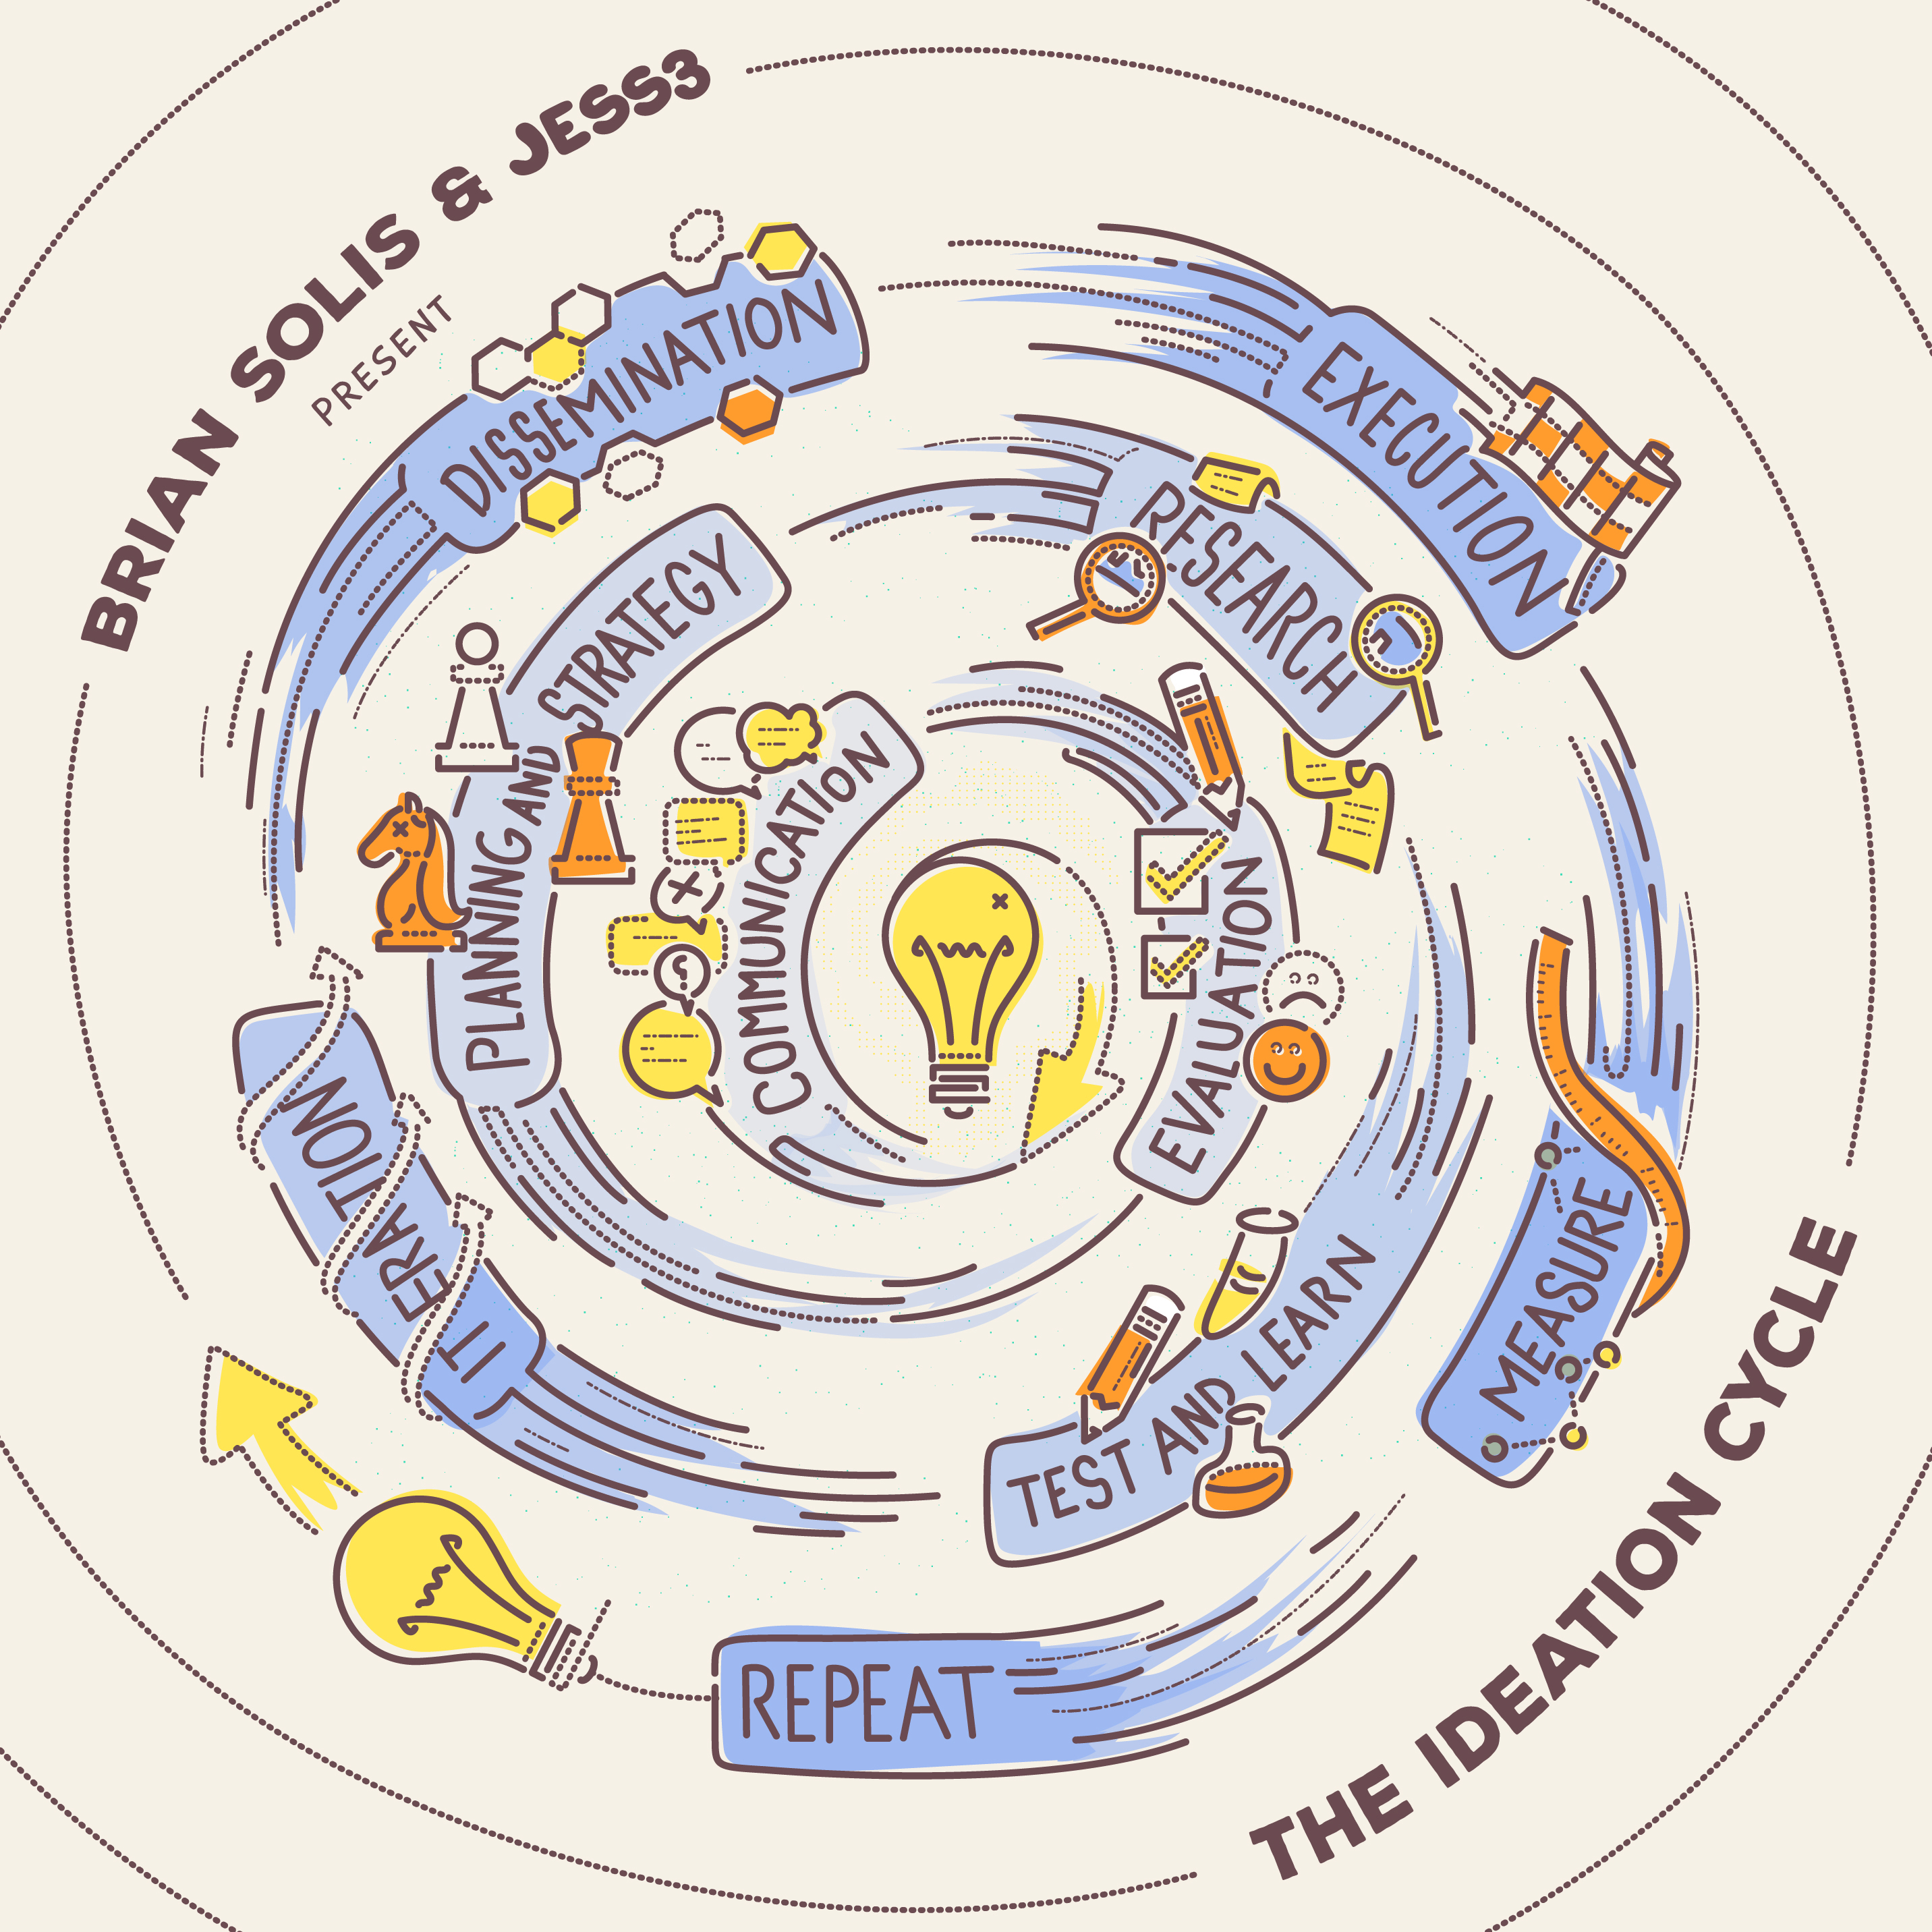 Introducing The Ideation Cycle – A Fun Framework for Marketing and Building Movement Around New Ideas